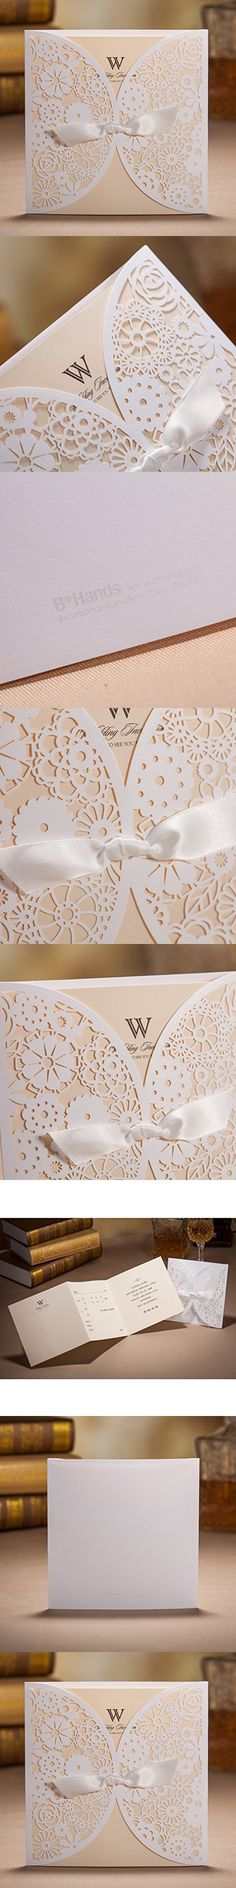 Wishmade 50x Laser Cut Trifold Lace Sleeve Wedding Invitations Cards Kits for Wedding Engagement Bridal Shower Baby Shower Birthday Quinceanera Graduation Paper with Bow(set of 50pcs)